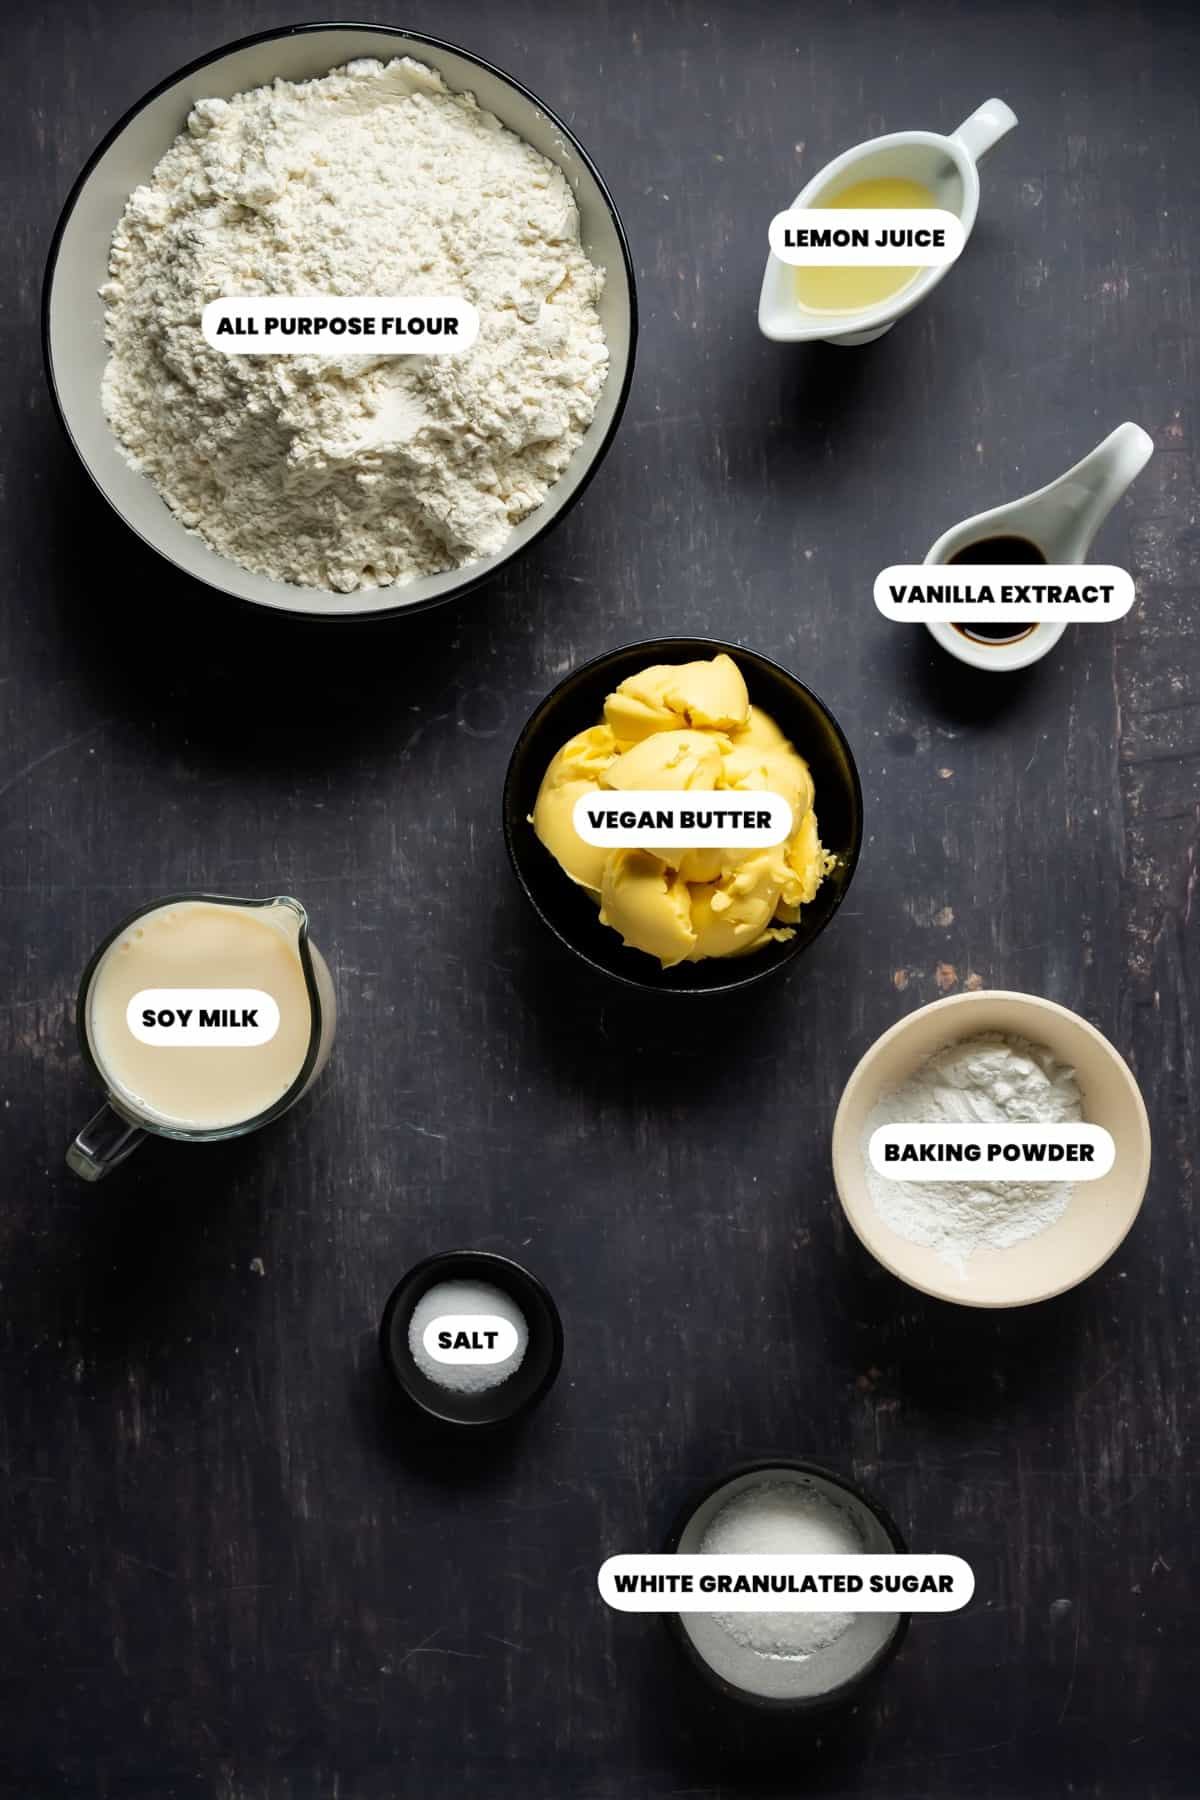 Photo of the ingredients needed to make vegan biscuits